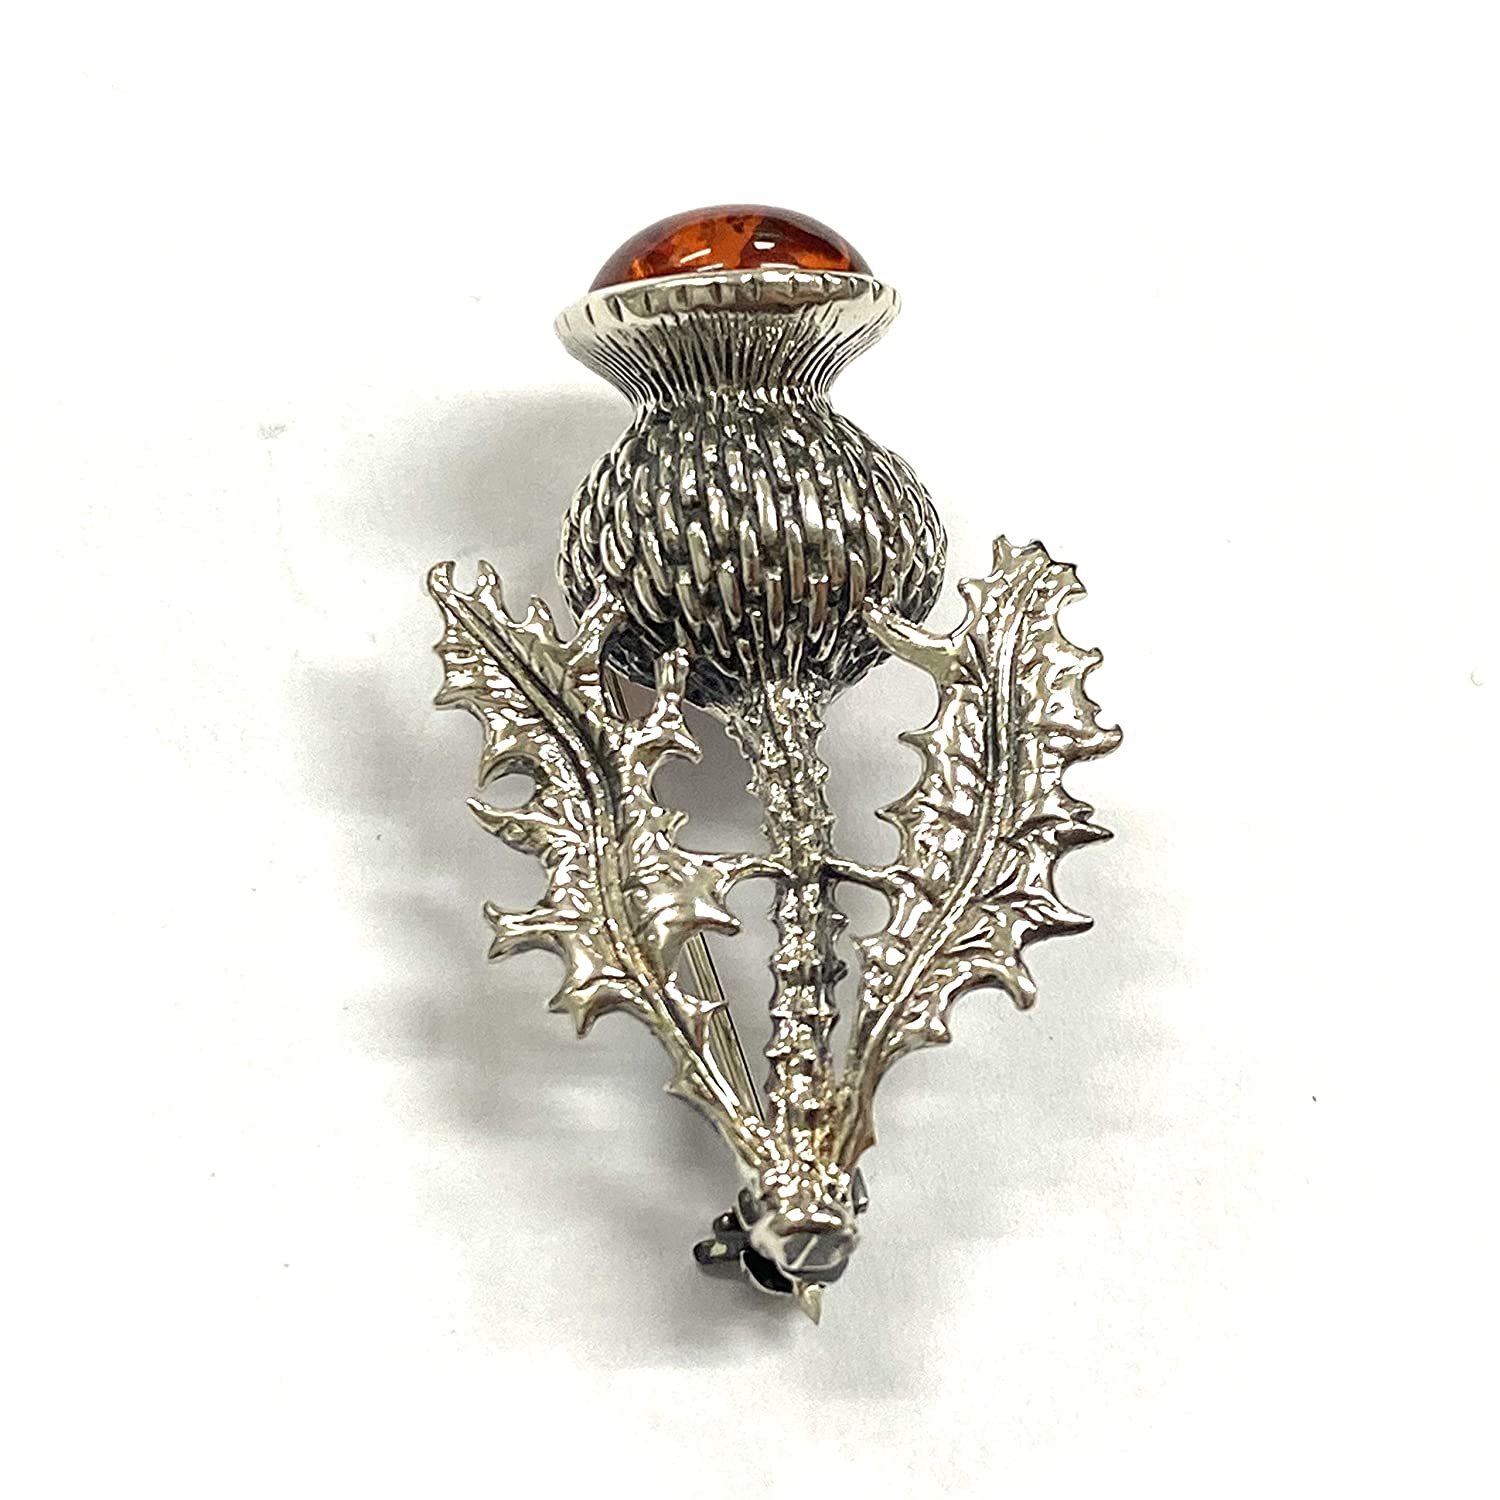 Art Nouveau Style Thistle Pin Brooch or Pendant with Amber Stone 925 Sterling Silver